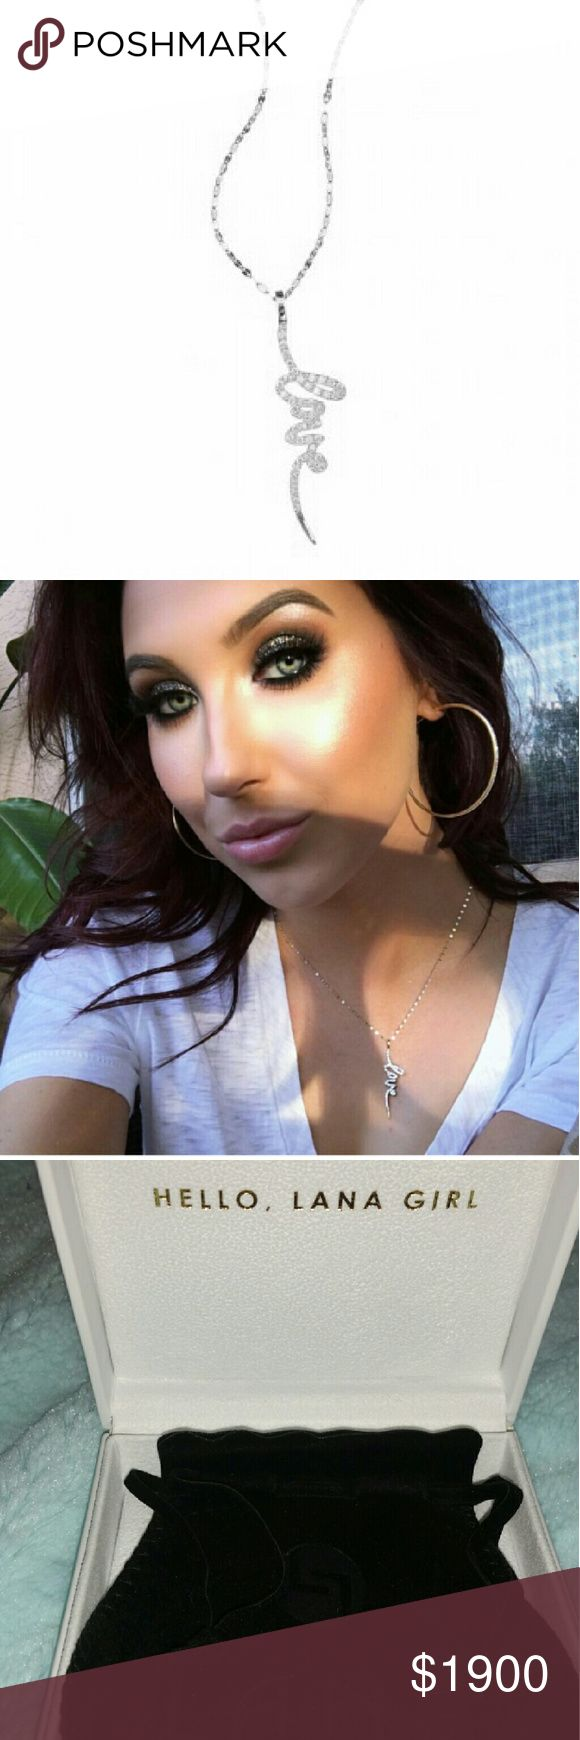 288 Best Images About Jaclyn Hill On Pinterest